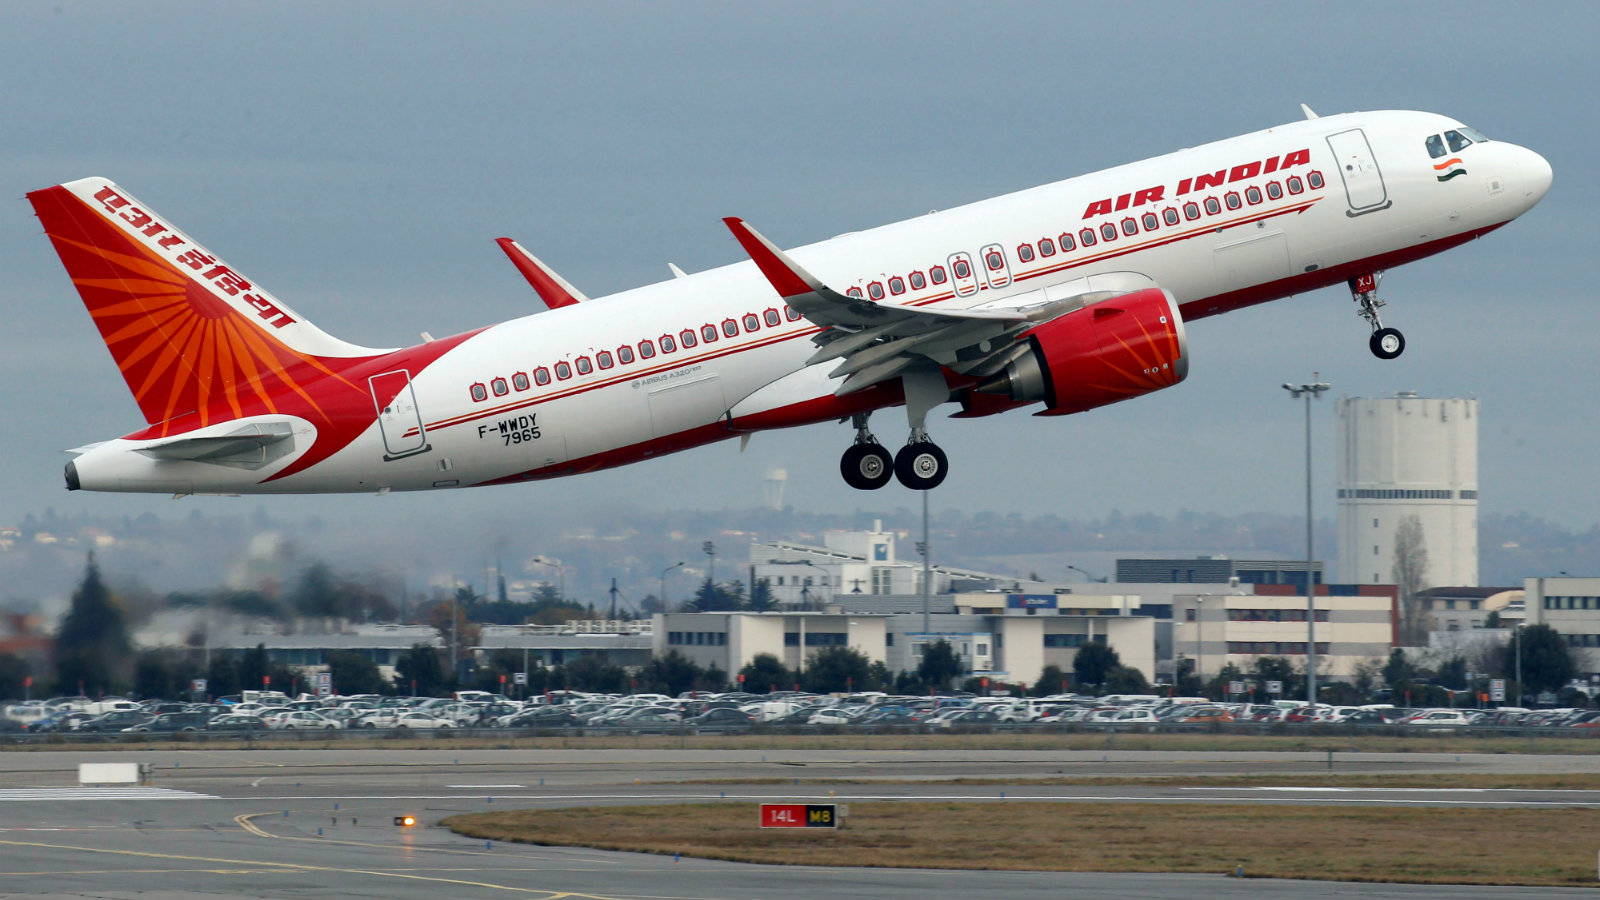 An Air India Airbus A320neo plane takes off in Colomiers near Toulouse, France, December 13, 2017.